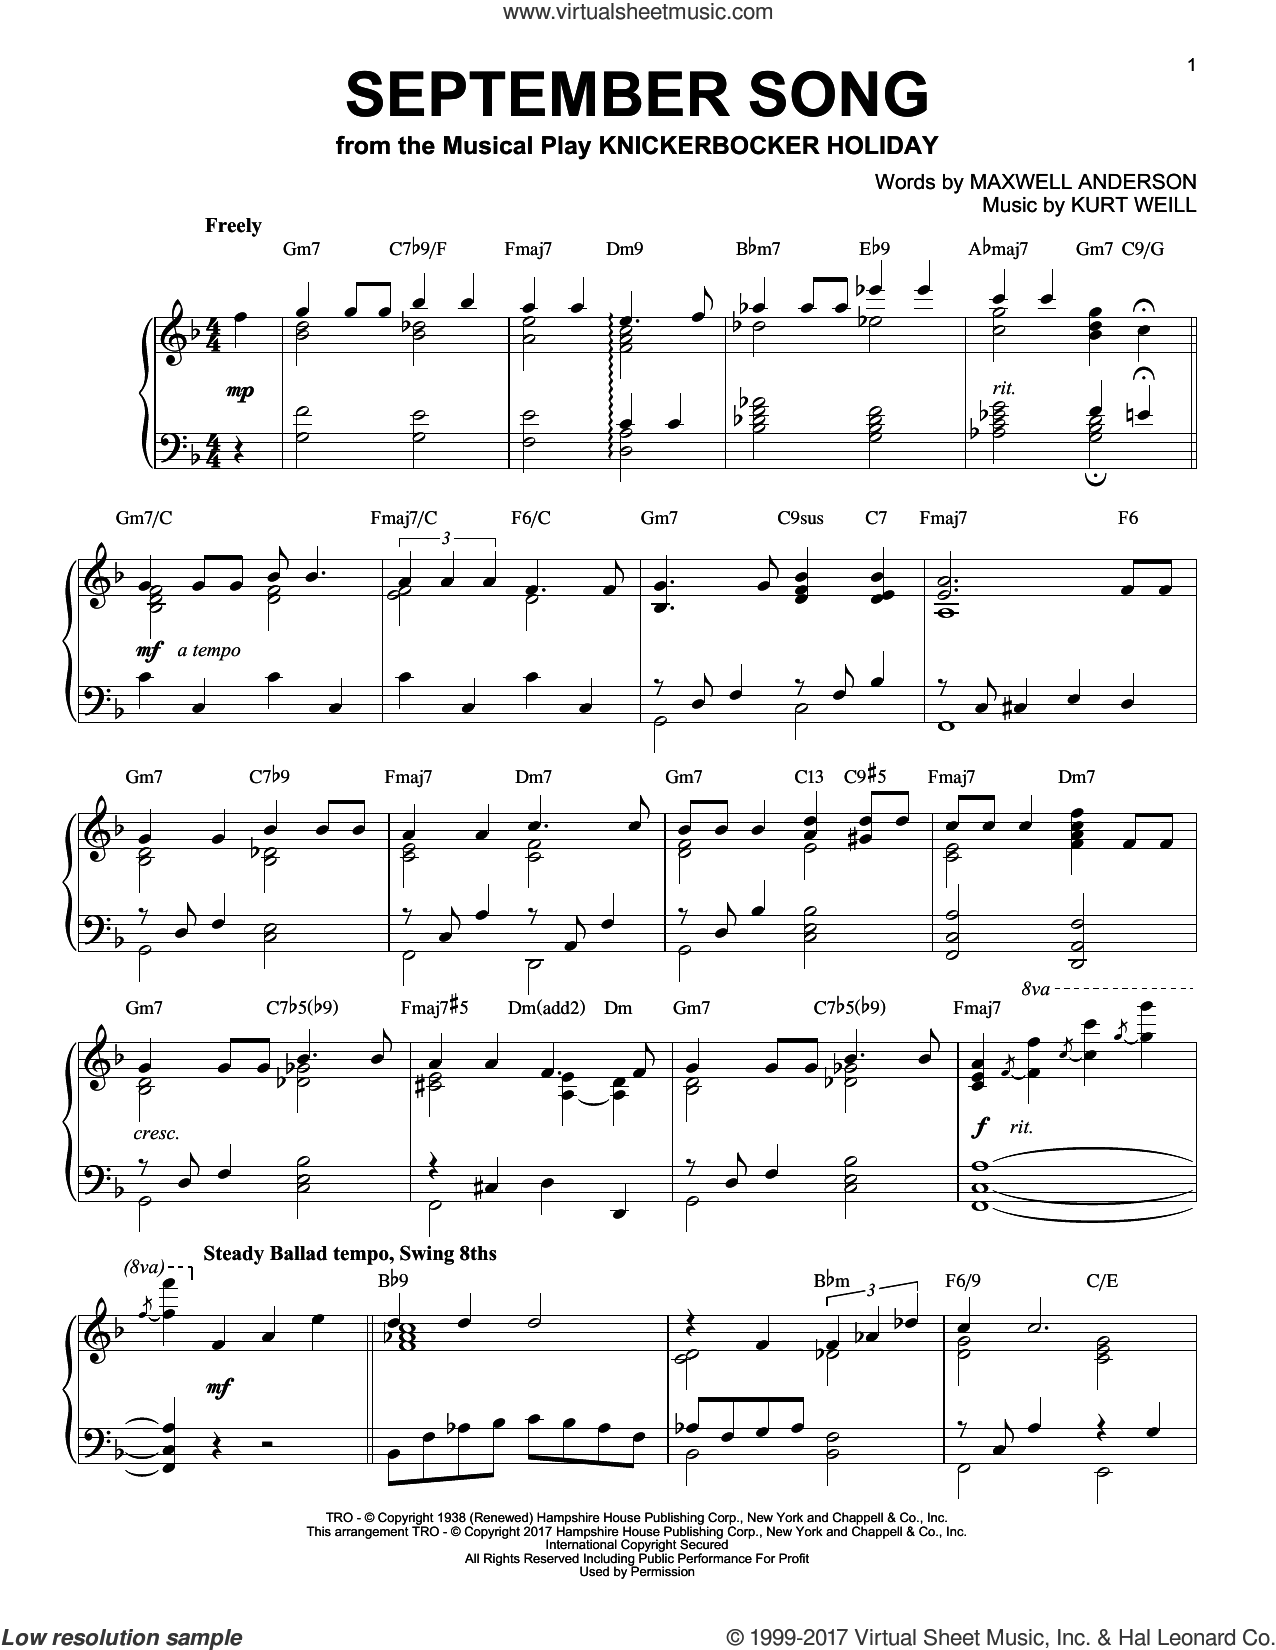 September Song [Jazz version] sheet music for piano solo by Kurt Weill, Jimmy Durante, Willie Nelson and Maxwell Anderson, intermediate skill level